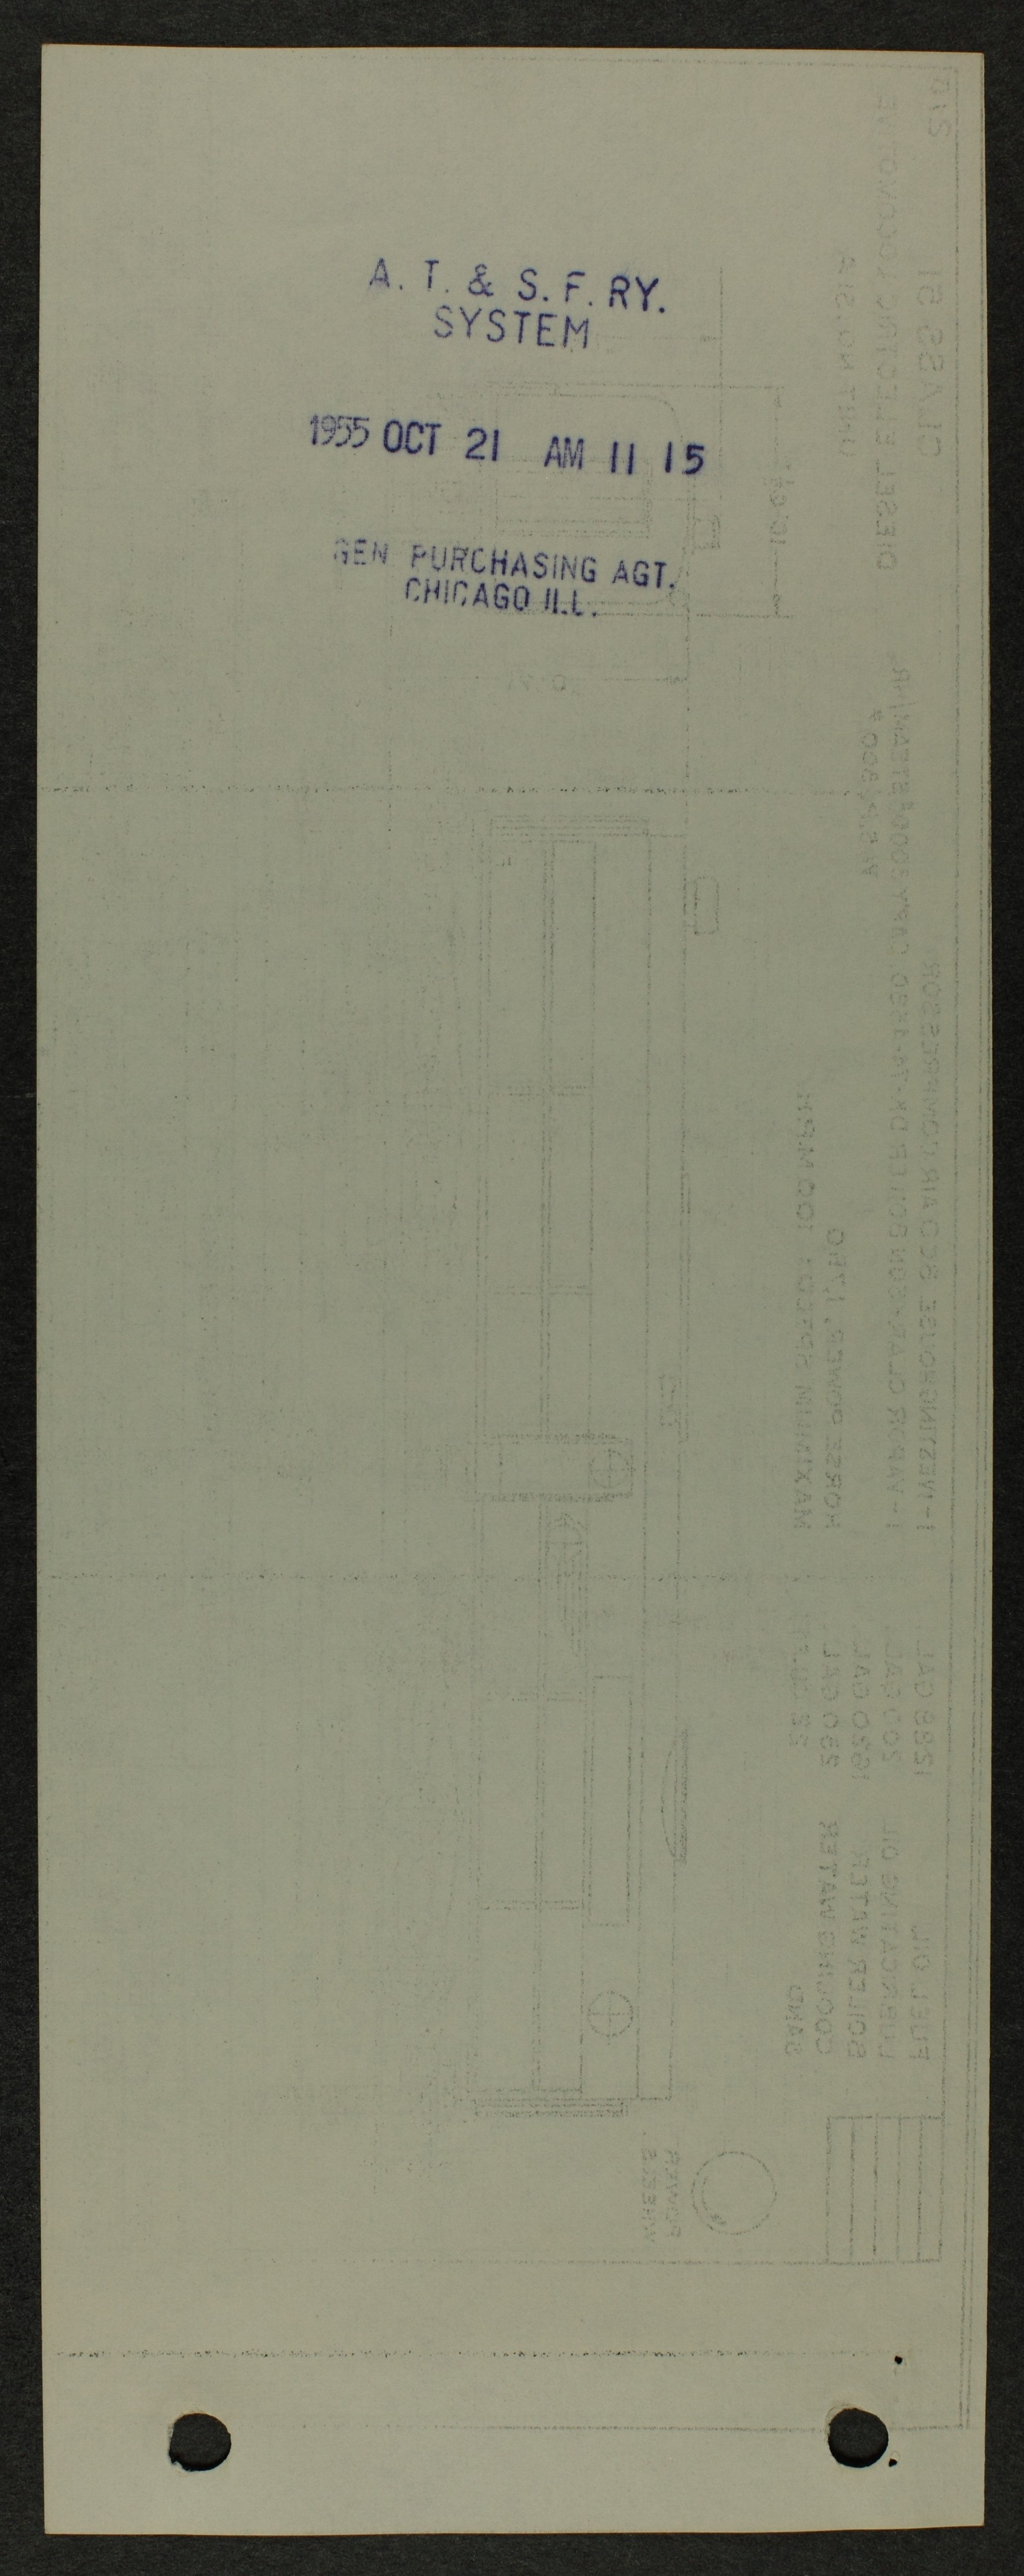 Atchison, Topeka and Santa Fe diesel engine diagrams and blueprints - 5